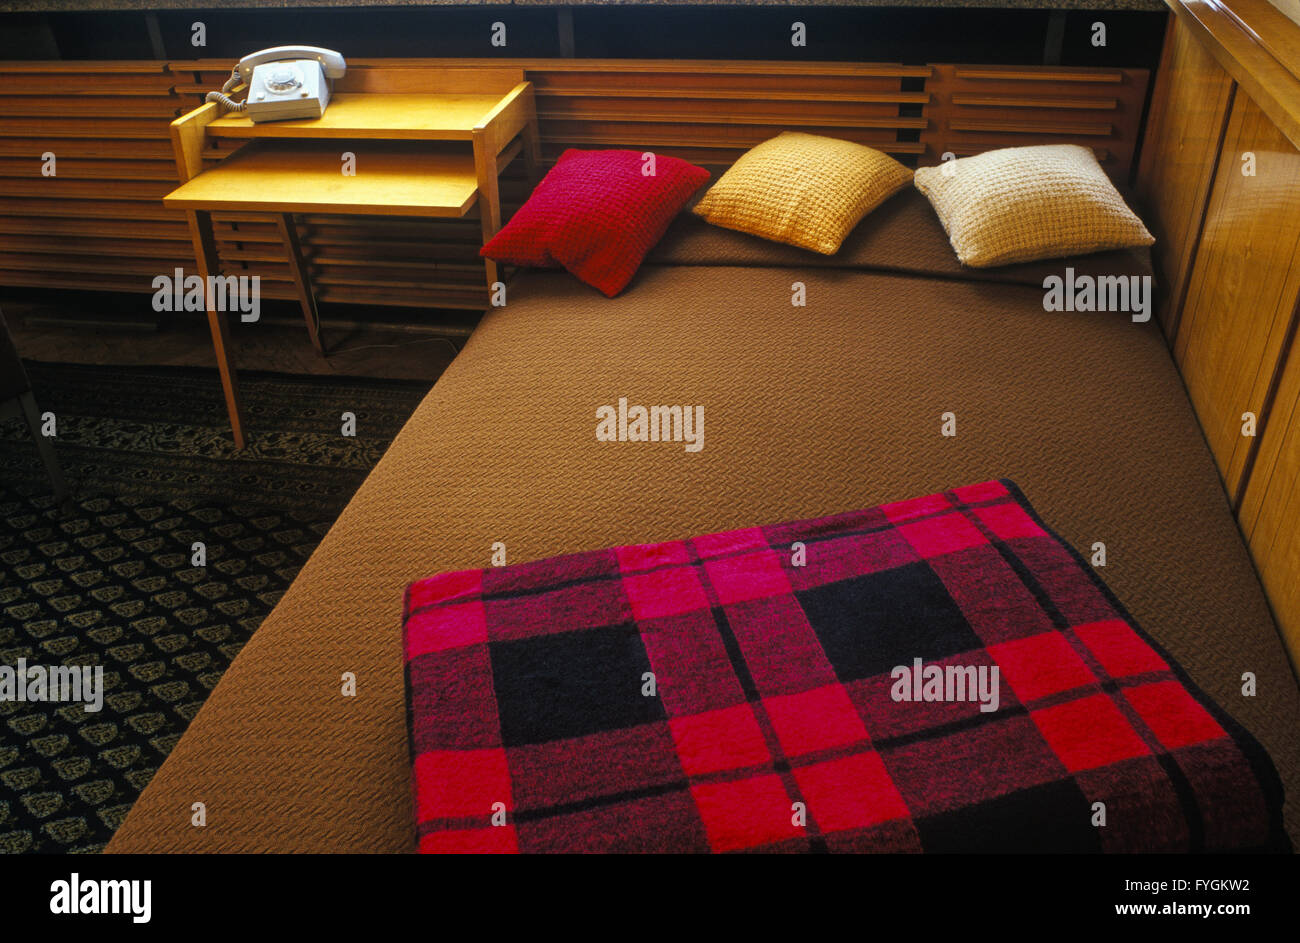 Bed couch of Erich Mielke, Stasi Museum, Berlin - Stock Image